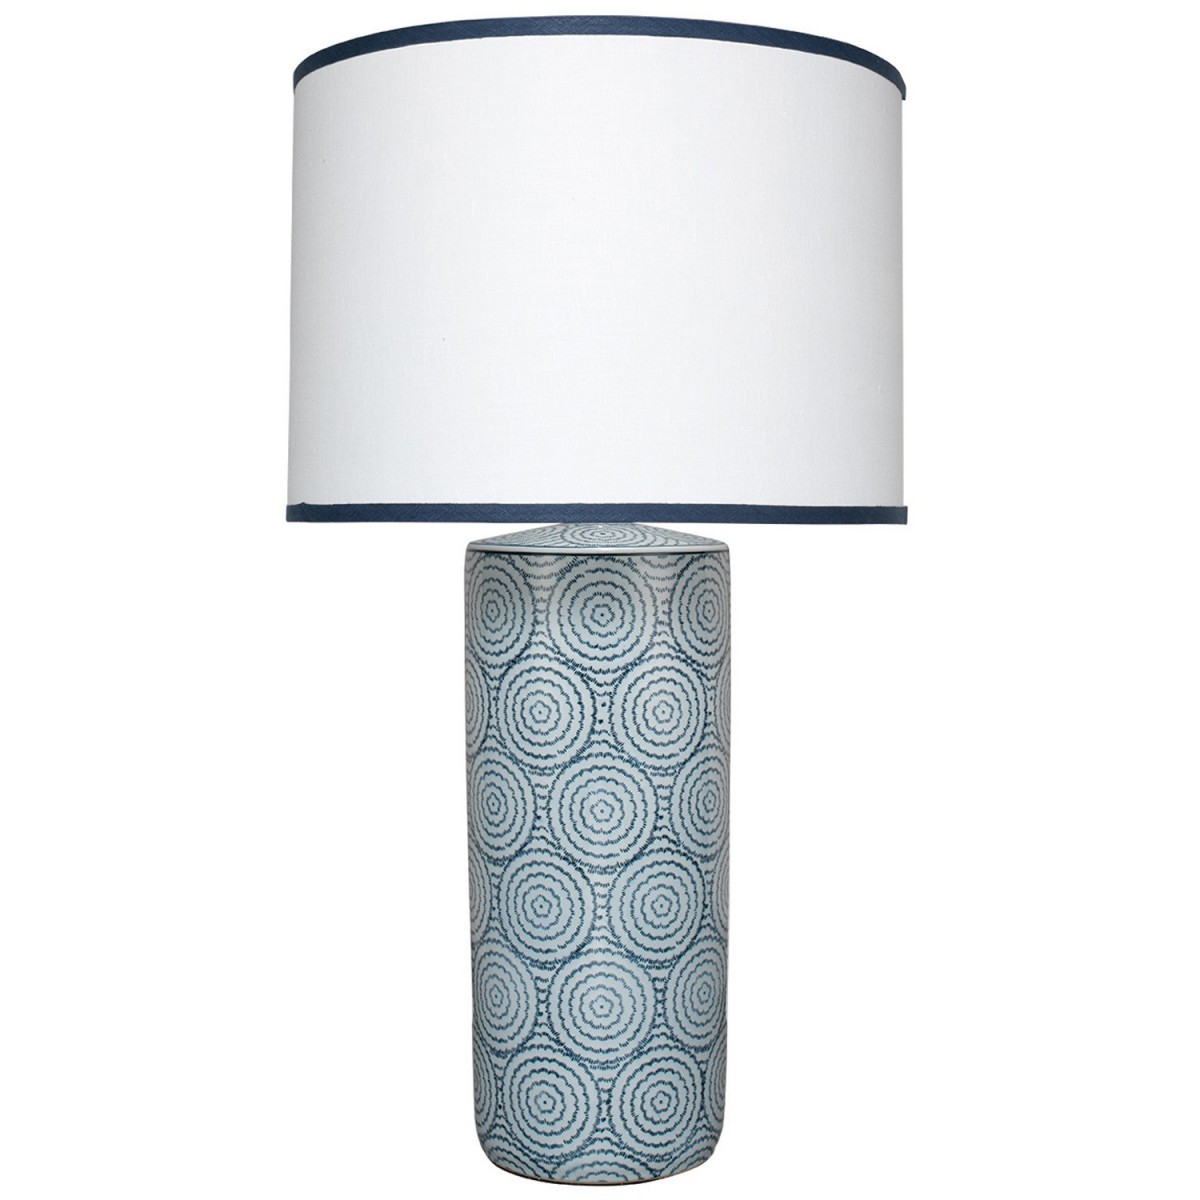 Jamie Young Co Hamptons Table Lamp Candelabra Inc pertaining to size 1200 X 1200